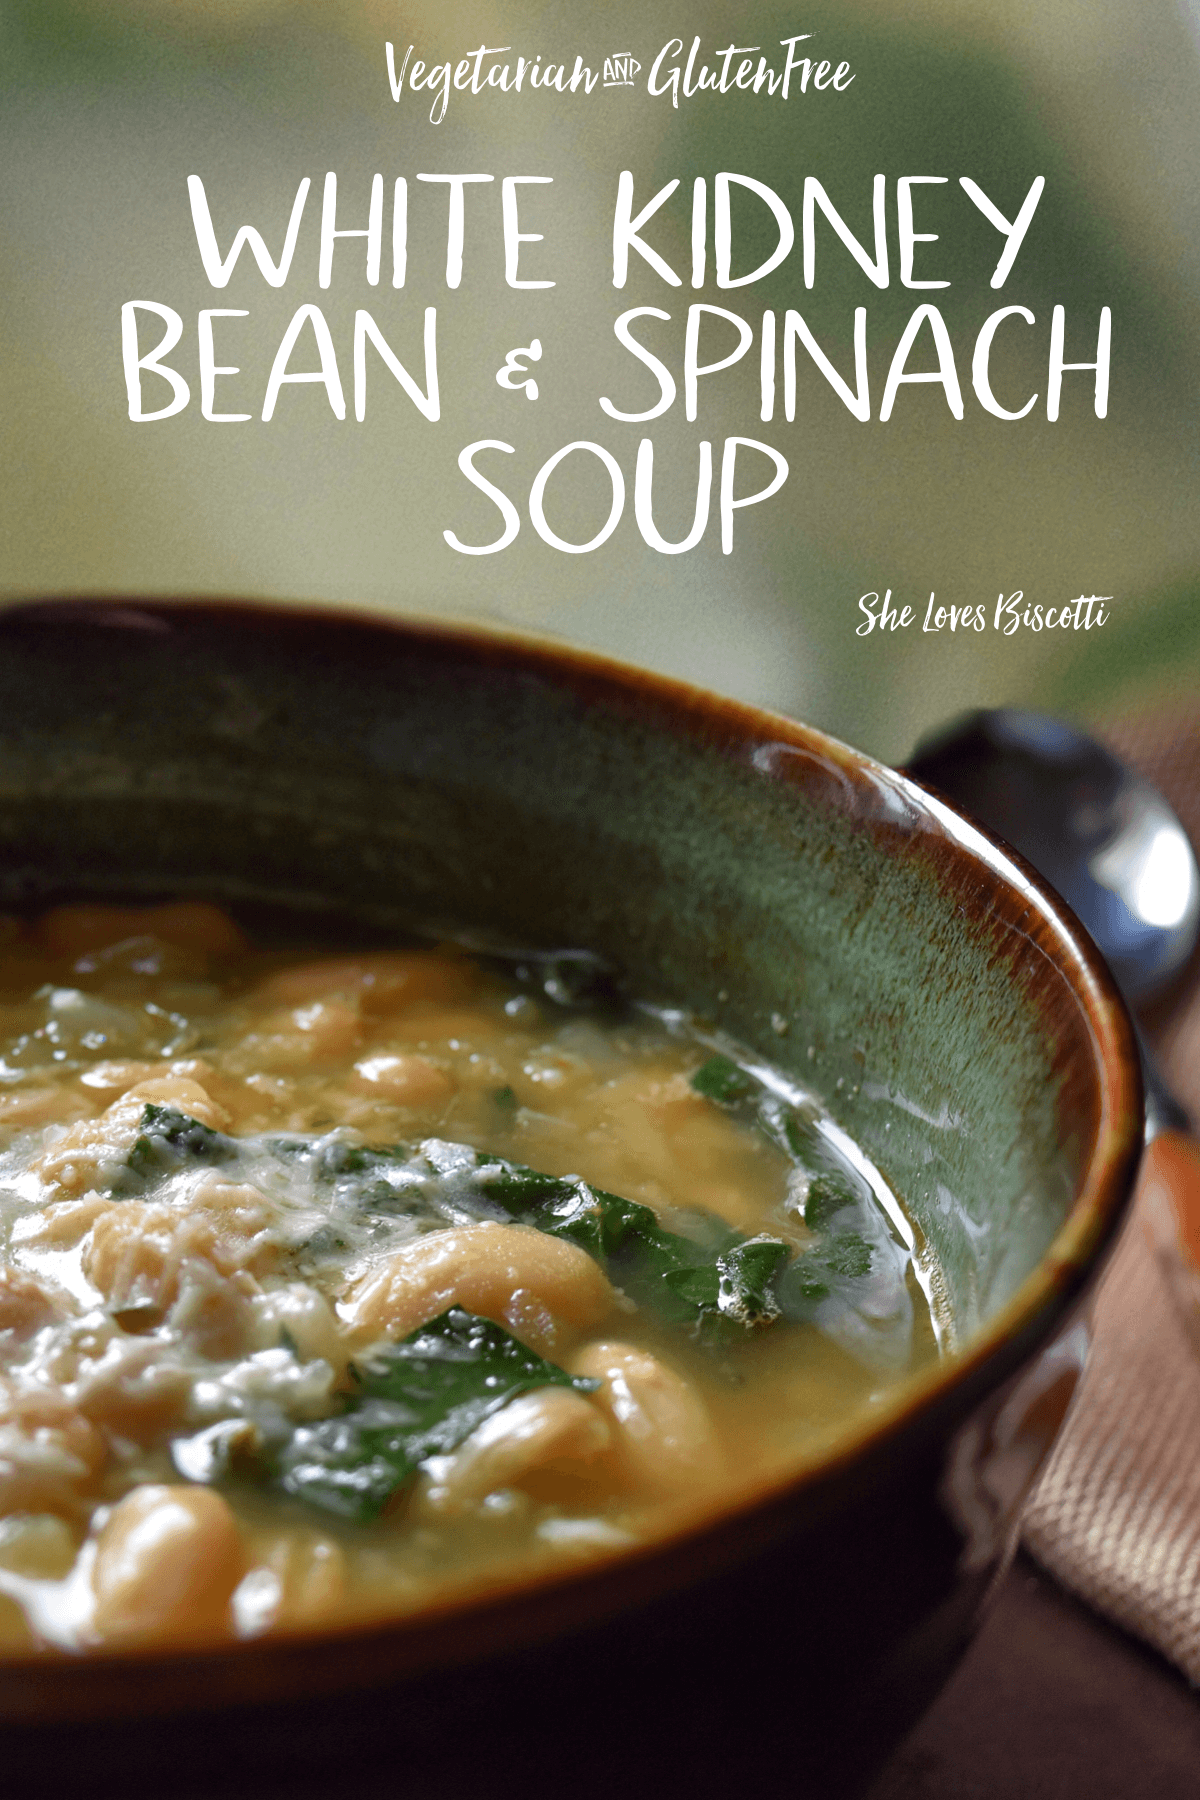 This Easy White Kidney Bean and Spinach Soup recipe is not only good for you, but good-tasting too. An easy recipe for a healthy and hearty soup. Vegetarian and Gluten free  #spinachsoup #soup #kidneybean #glutenfreesoup #comfortsoup #wintersoup #fallsoup #homemadesouprecipes #whitebeansoup #souprecipe